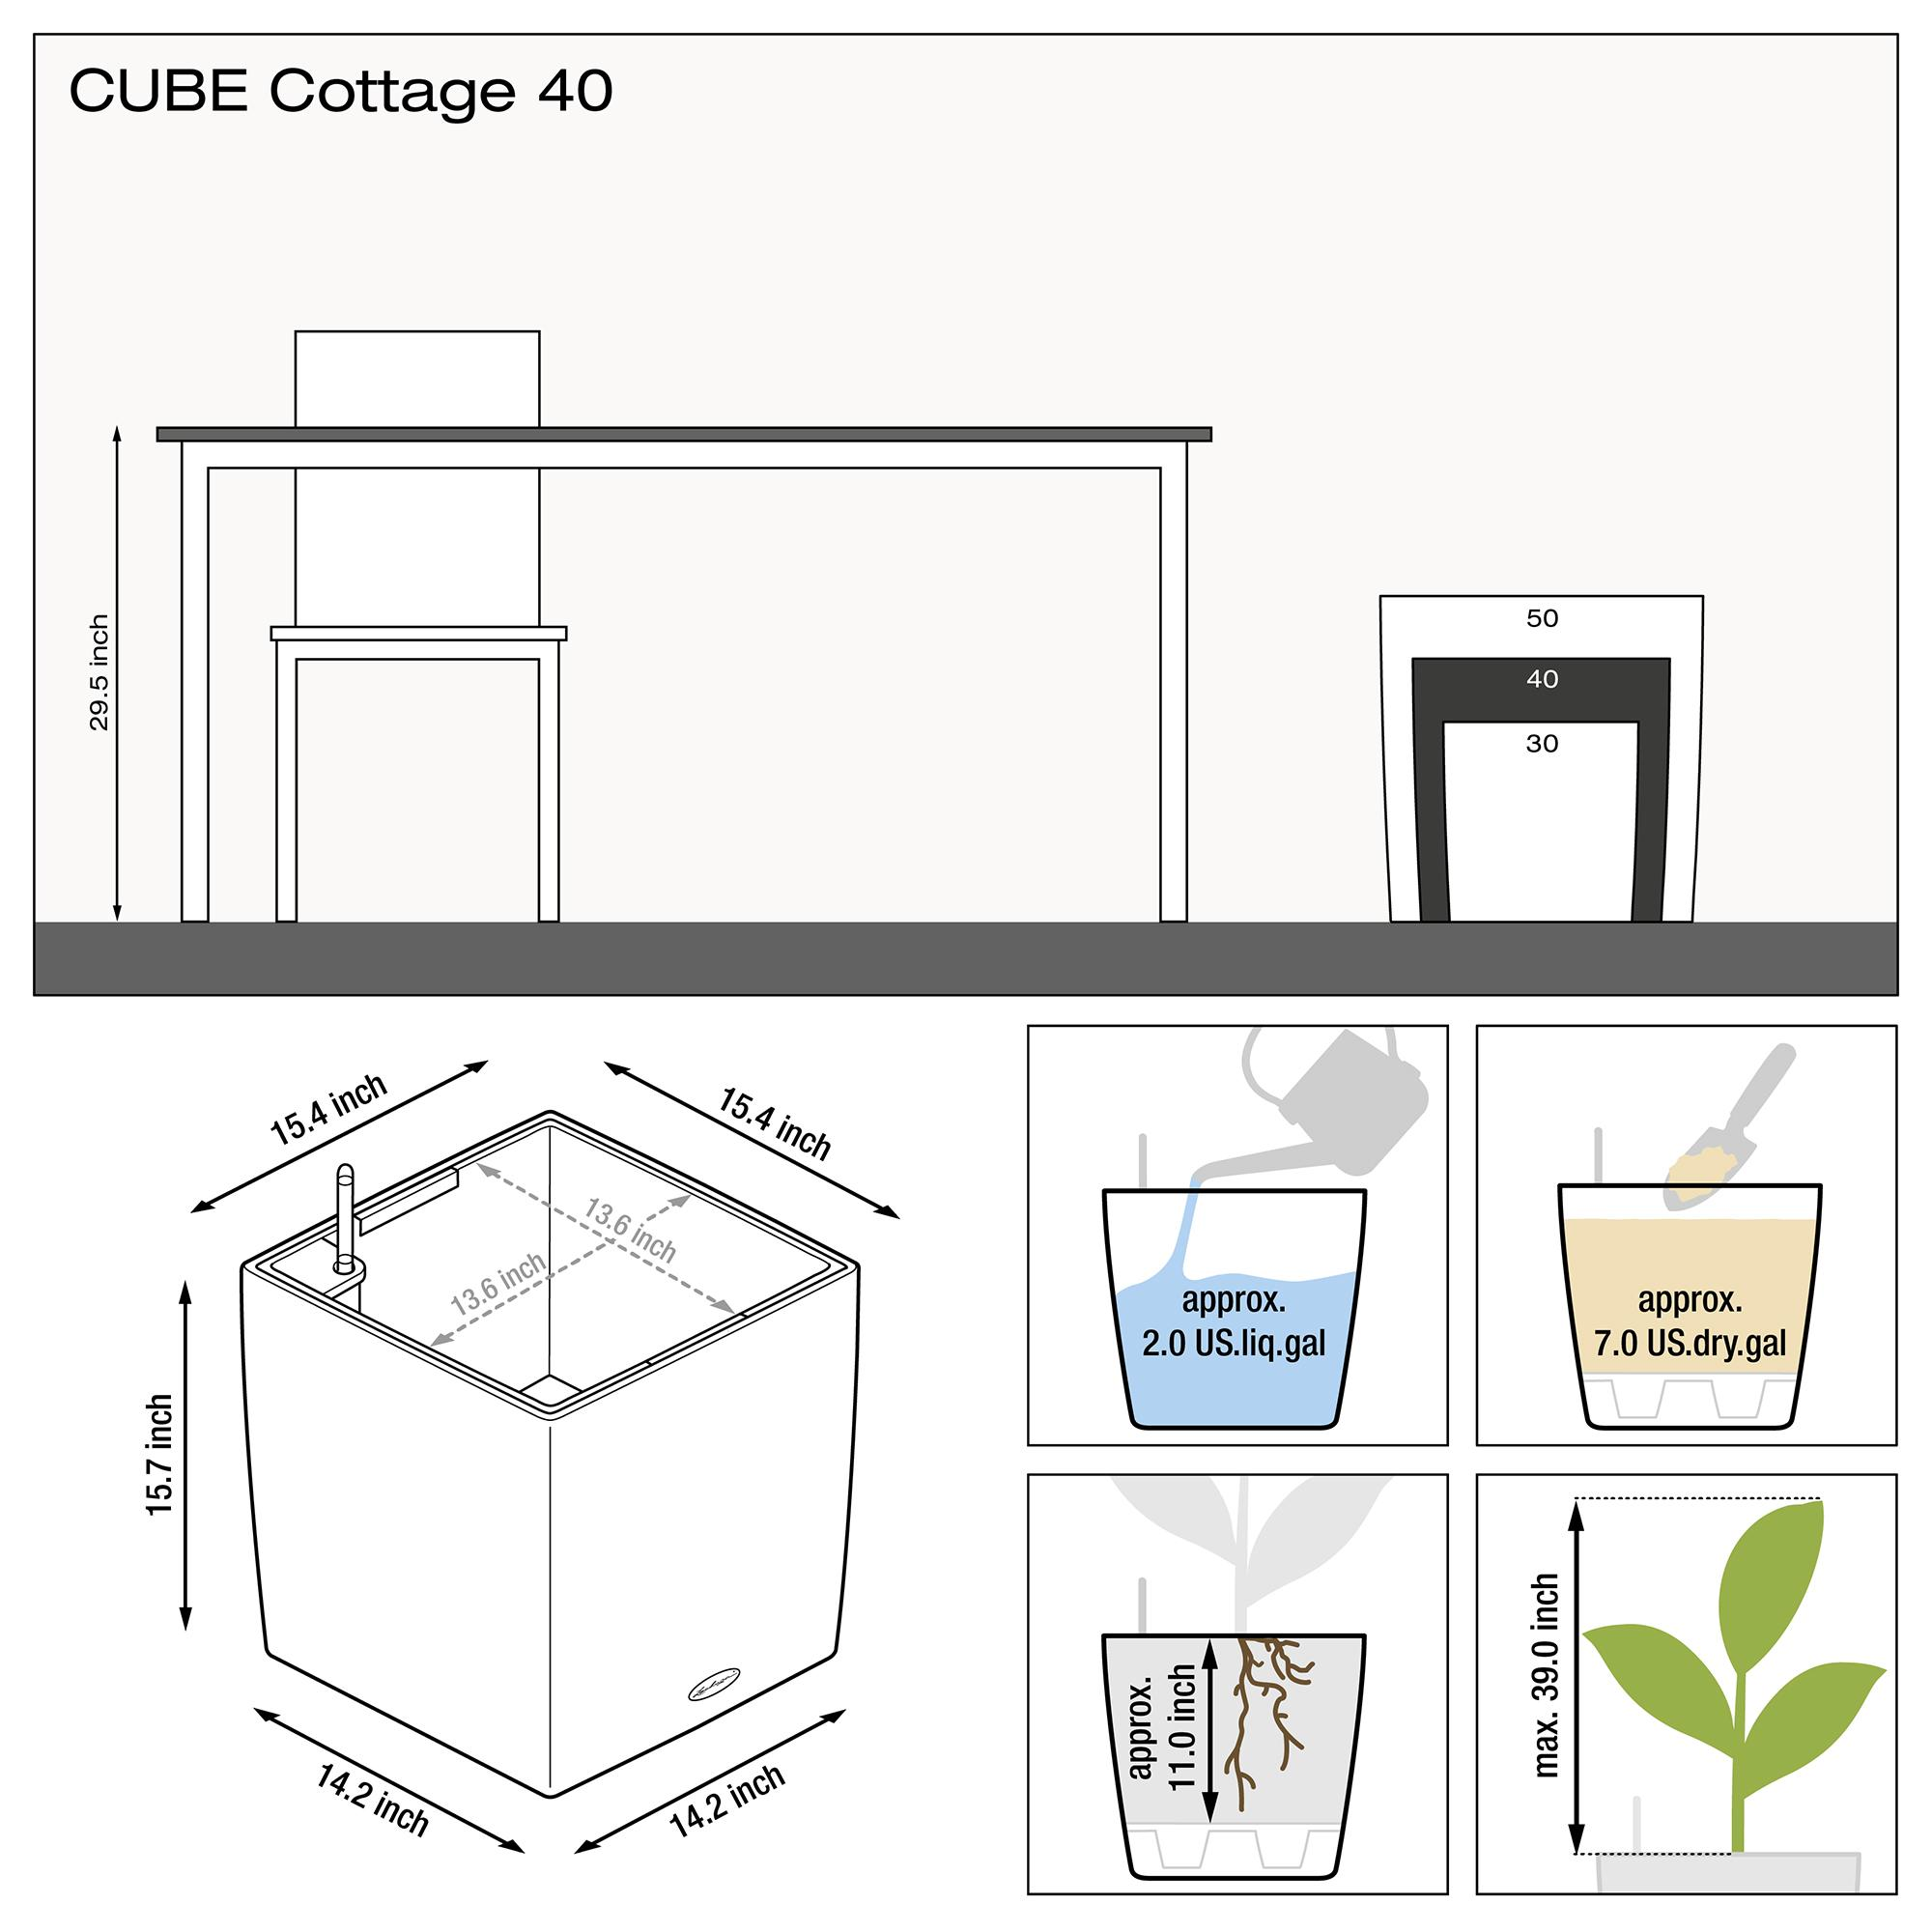 le_cube-cottage40_product_addi_nz_us